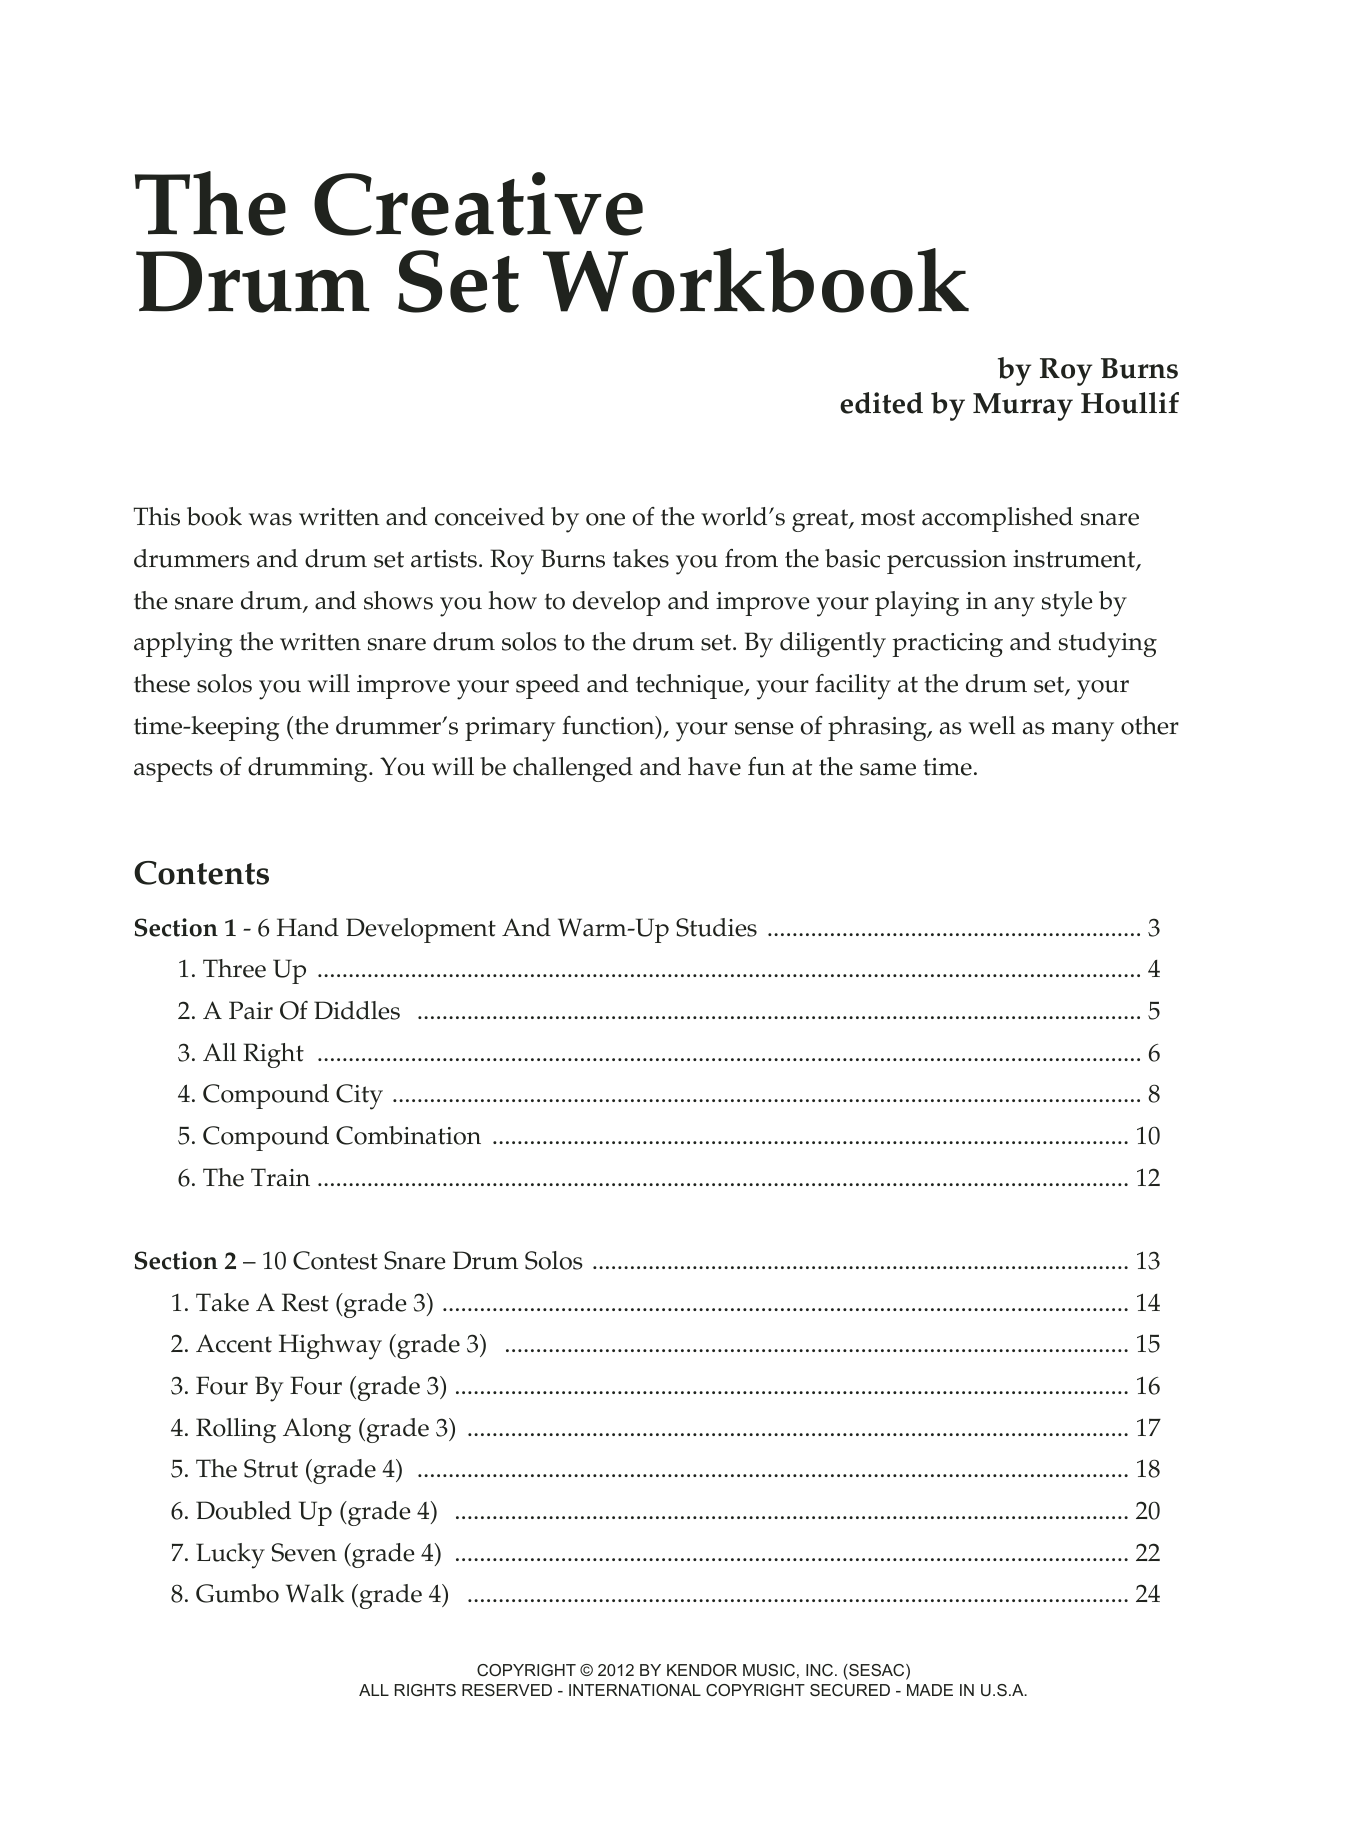 Murray Houllif The Creative Drum Set Workbook sheet music notes and chords. Download Printable PDF.